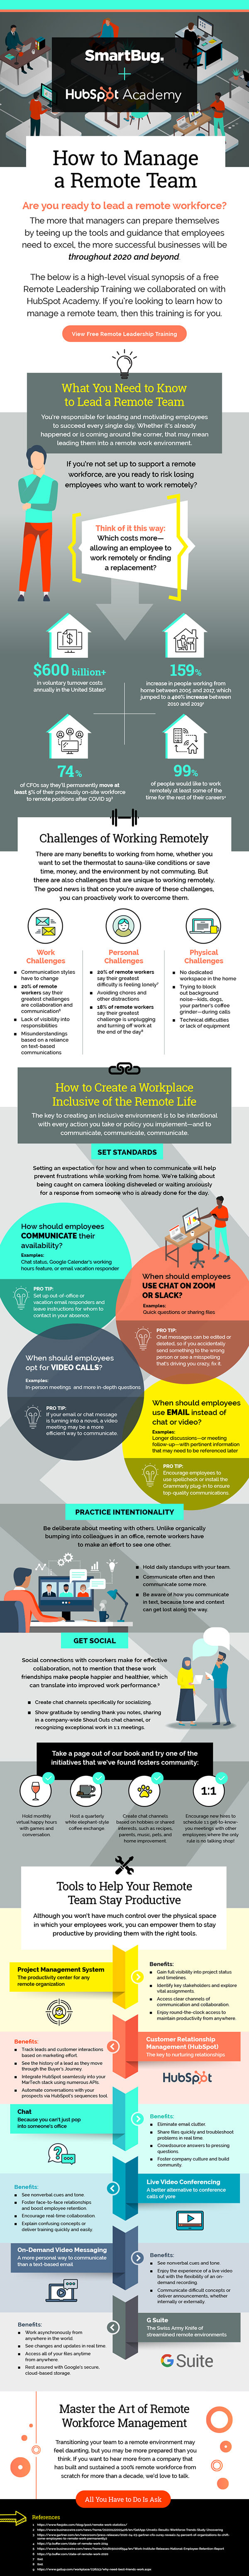 Remote Workforce Infographic - SmartBug Media and HubSpot